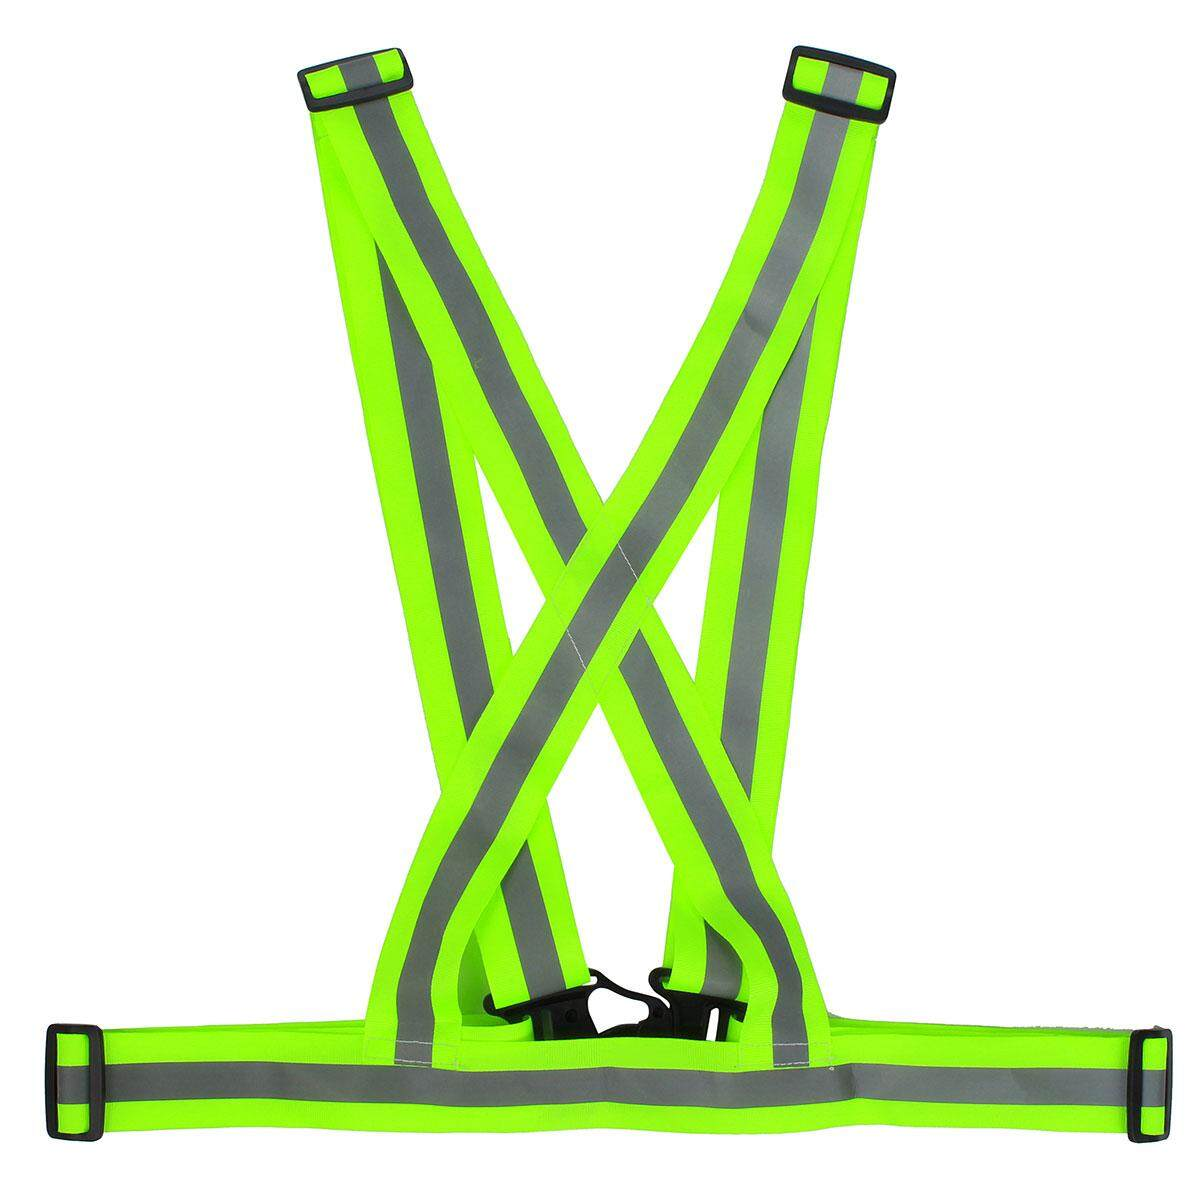 Green Adjustable Safety Visibility Reflective Vest Waistcoat For Cycling Running